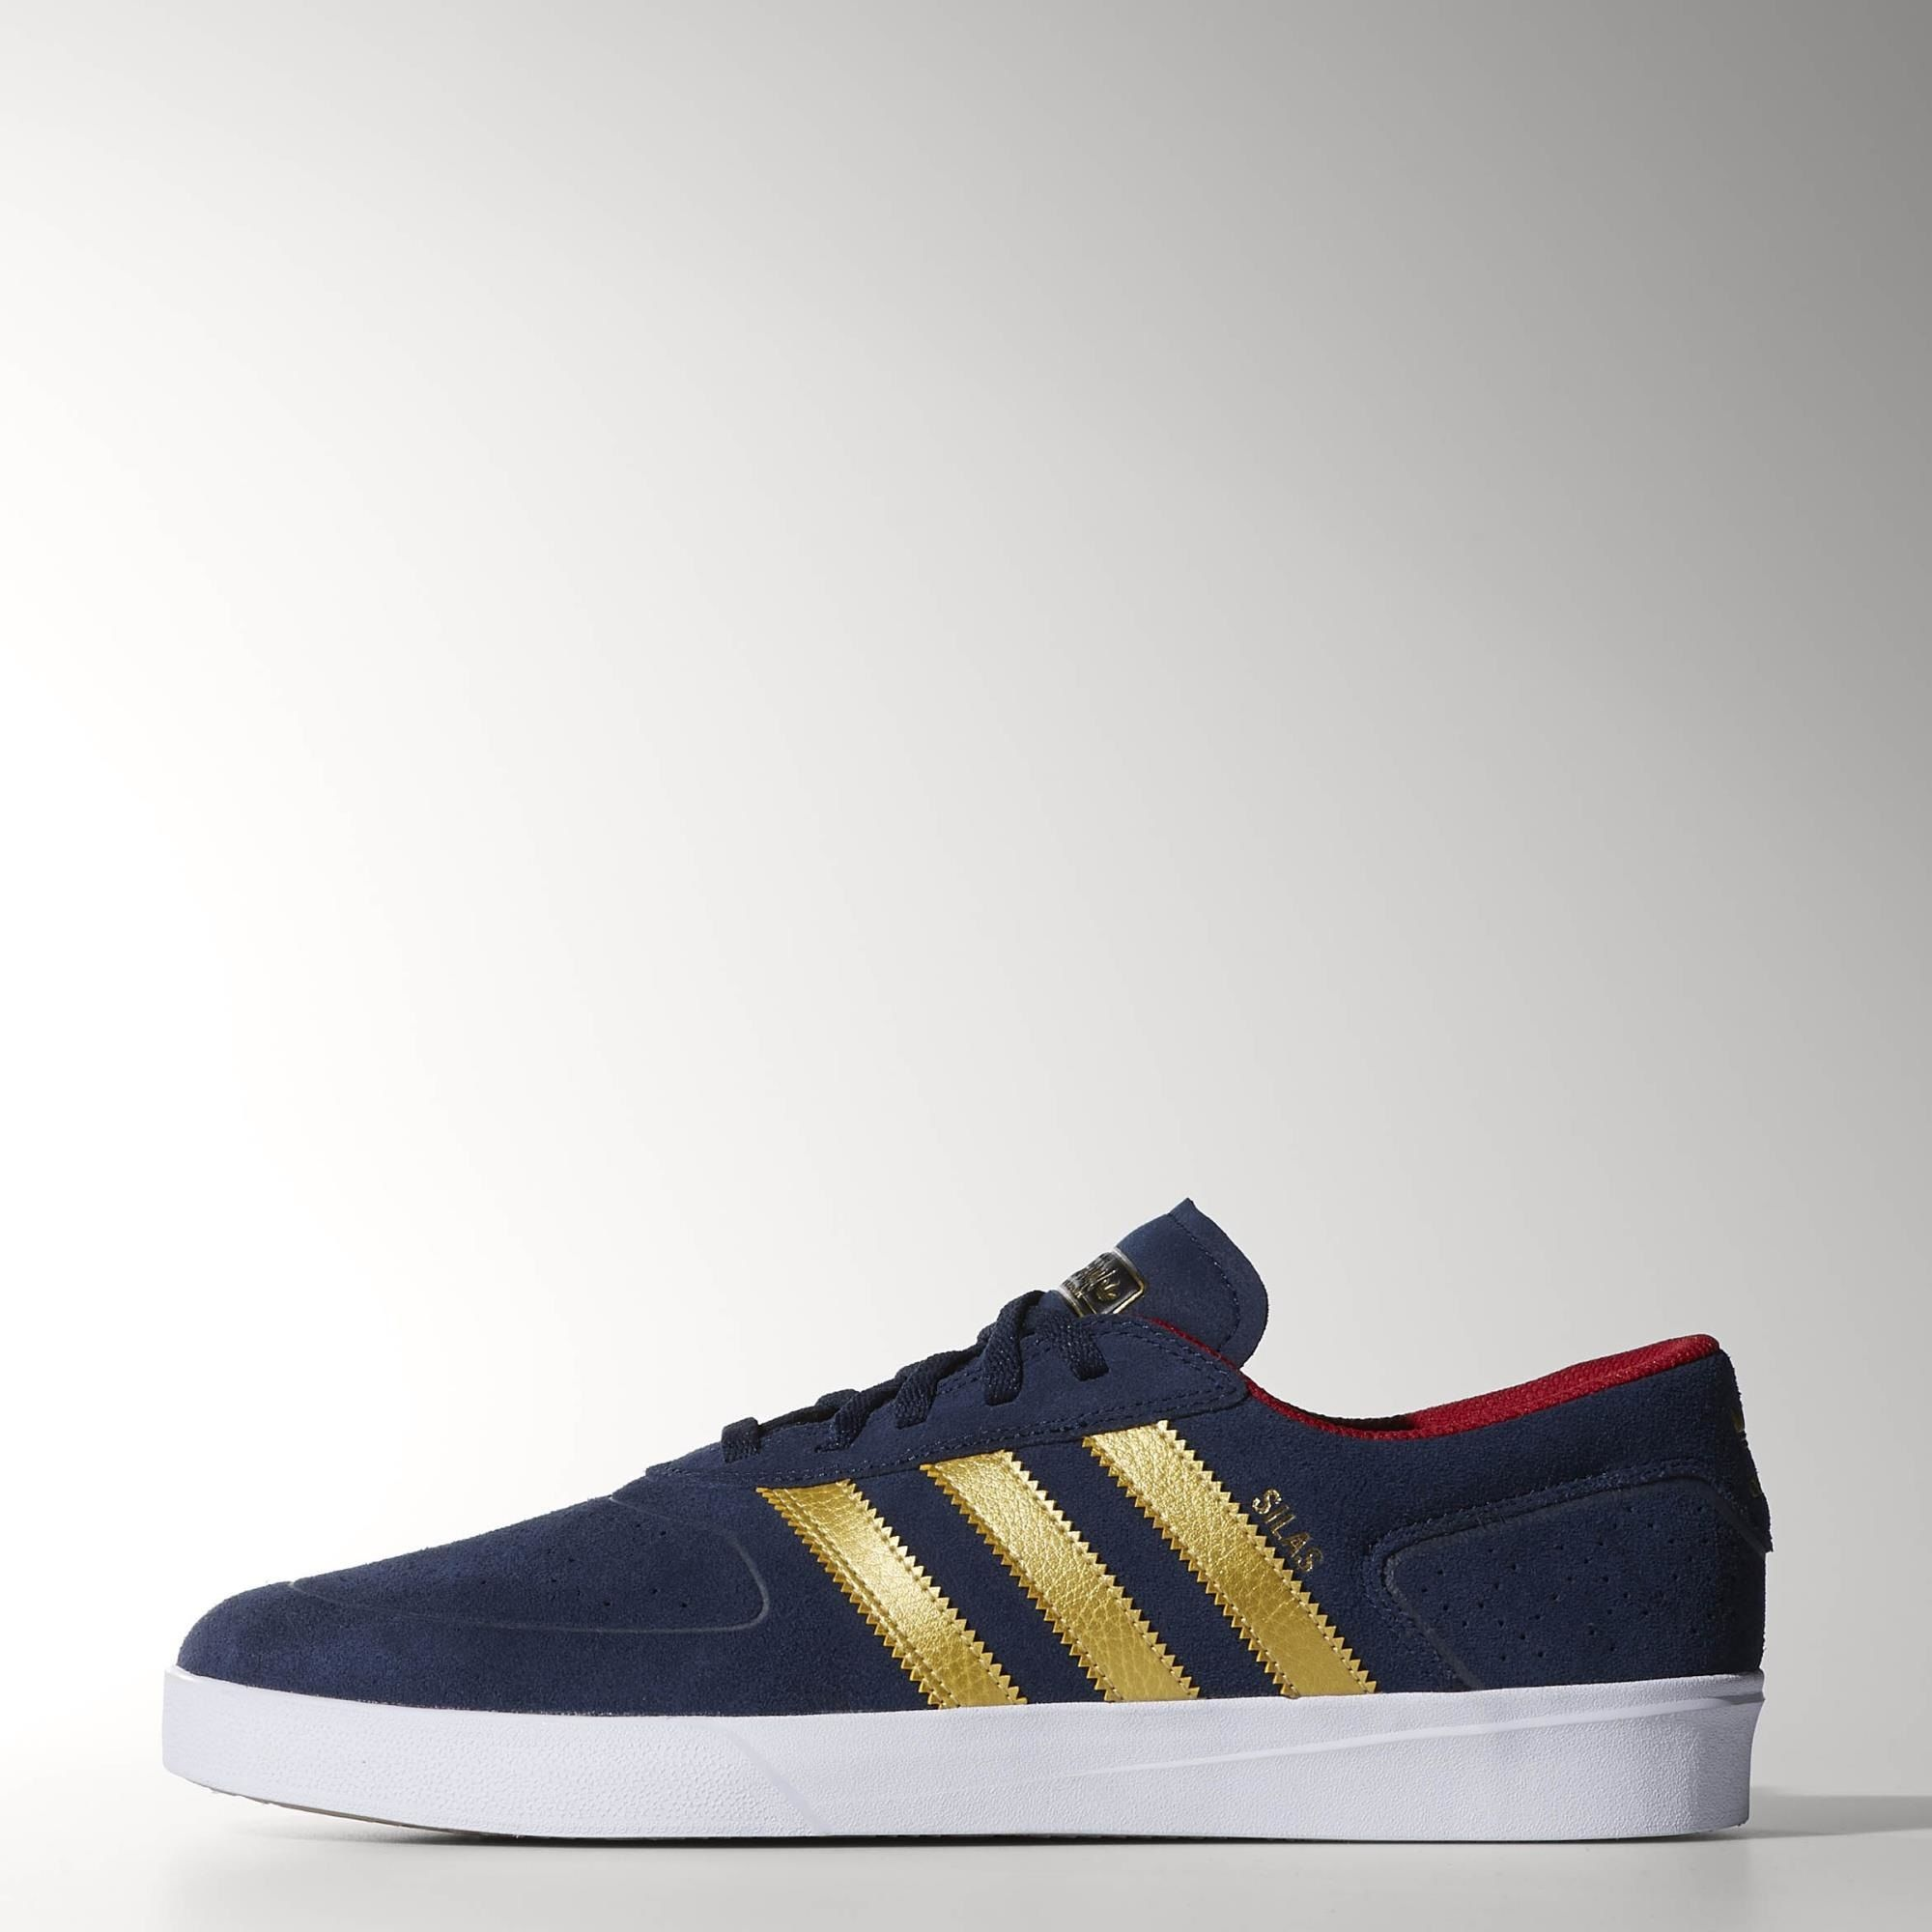 d4e581025c6 Pictures of Adidas Busenitz C Black  Surpet  Gold Mt  adidas  sneakers   Fashion  2015